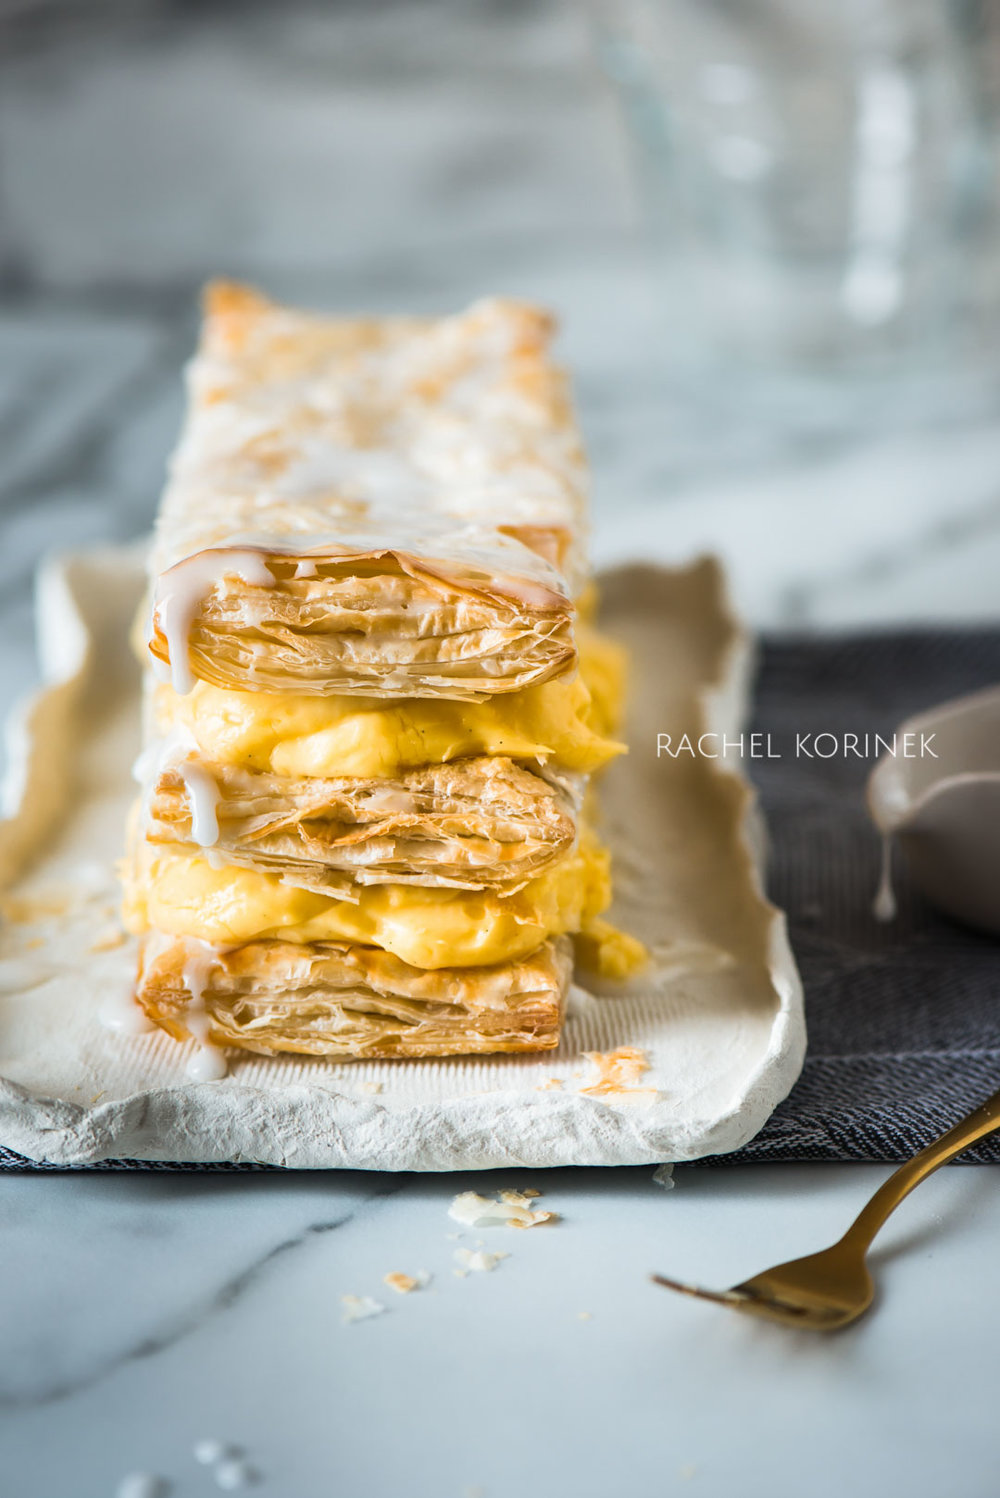 Rachel Korinek Melbourne Food Photographer Vanilla Slice